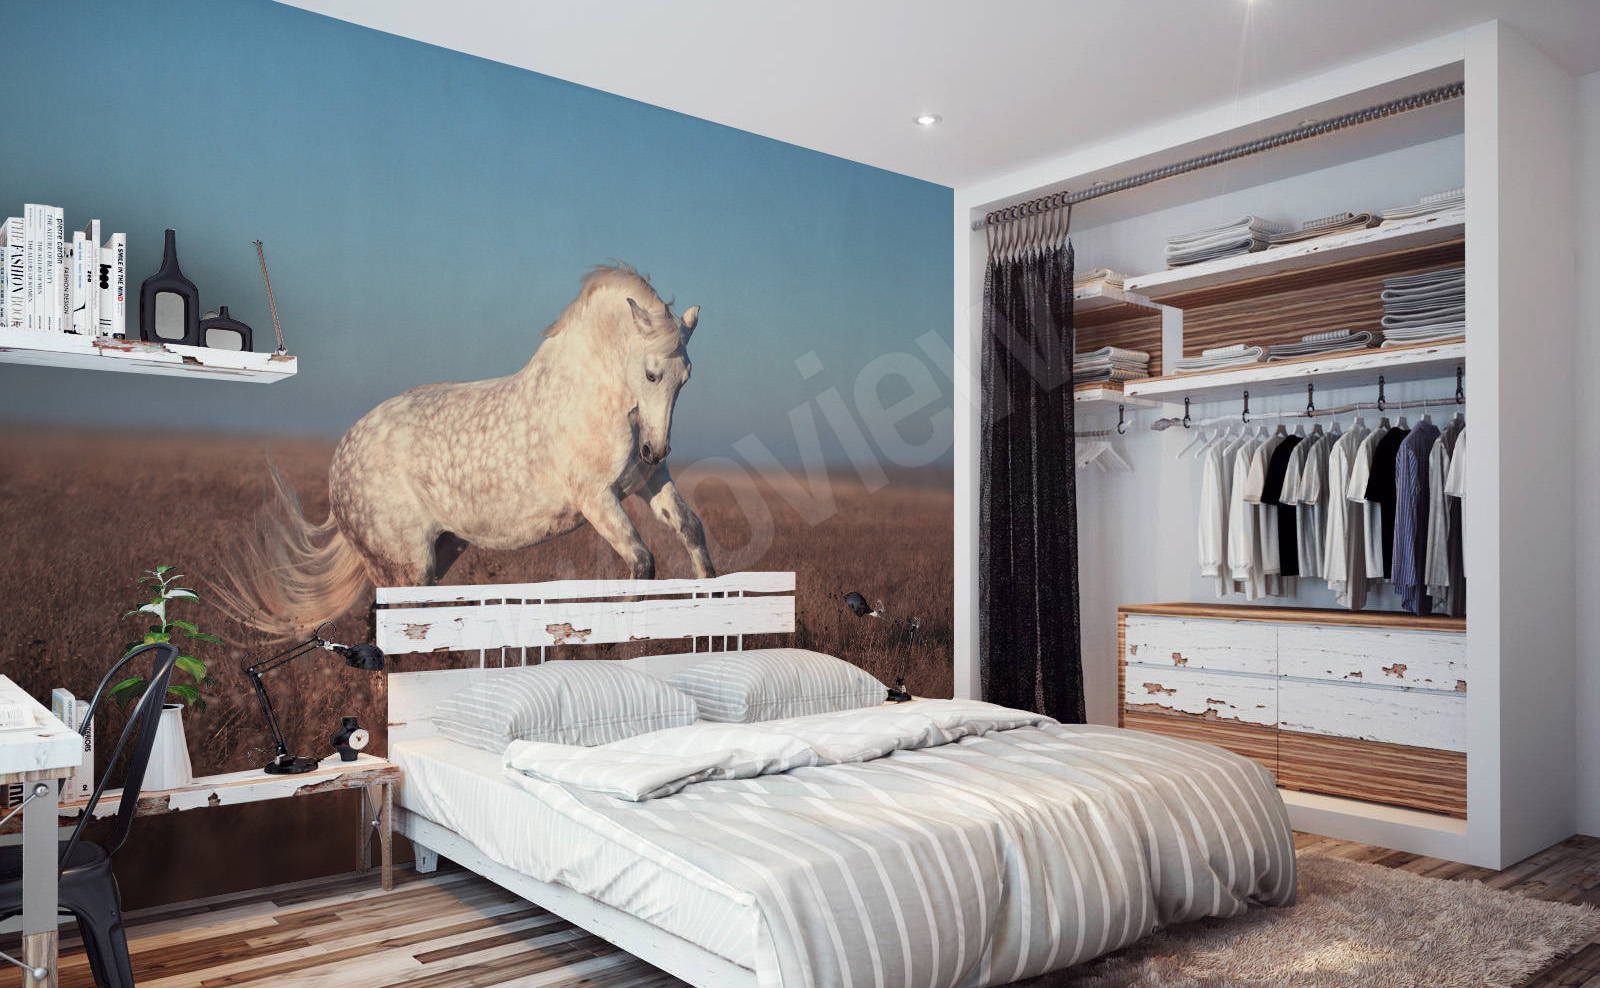 Go to the product   White horse mural. Murals Horses   to size of wall   myloview com